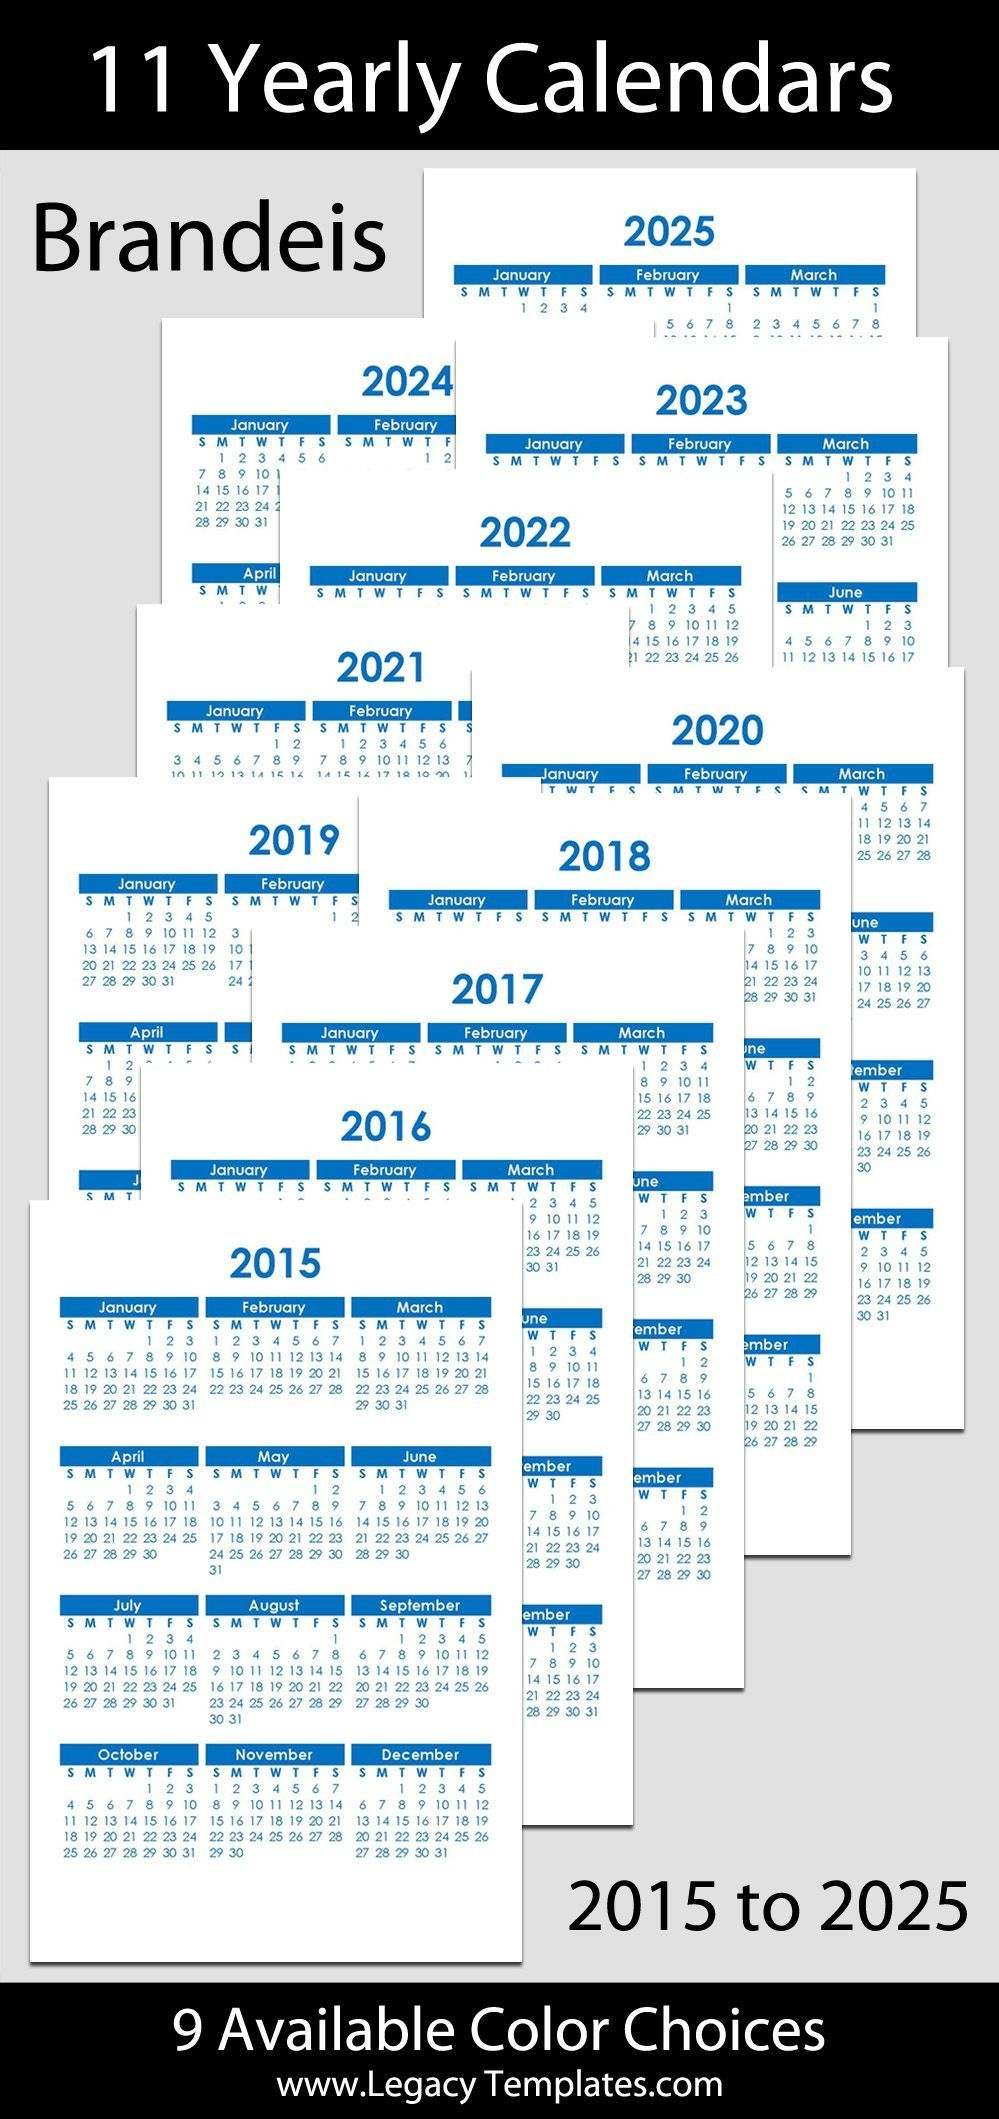 2015 To 2025 Printable Yearly Calendars Jr/half Letter